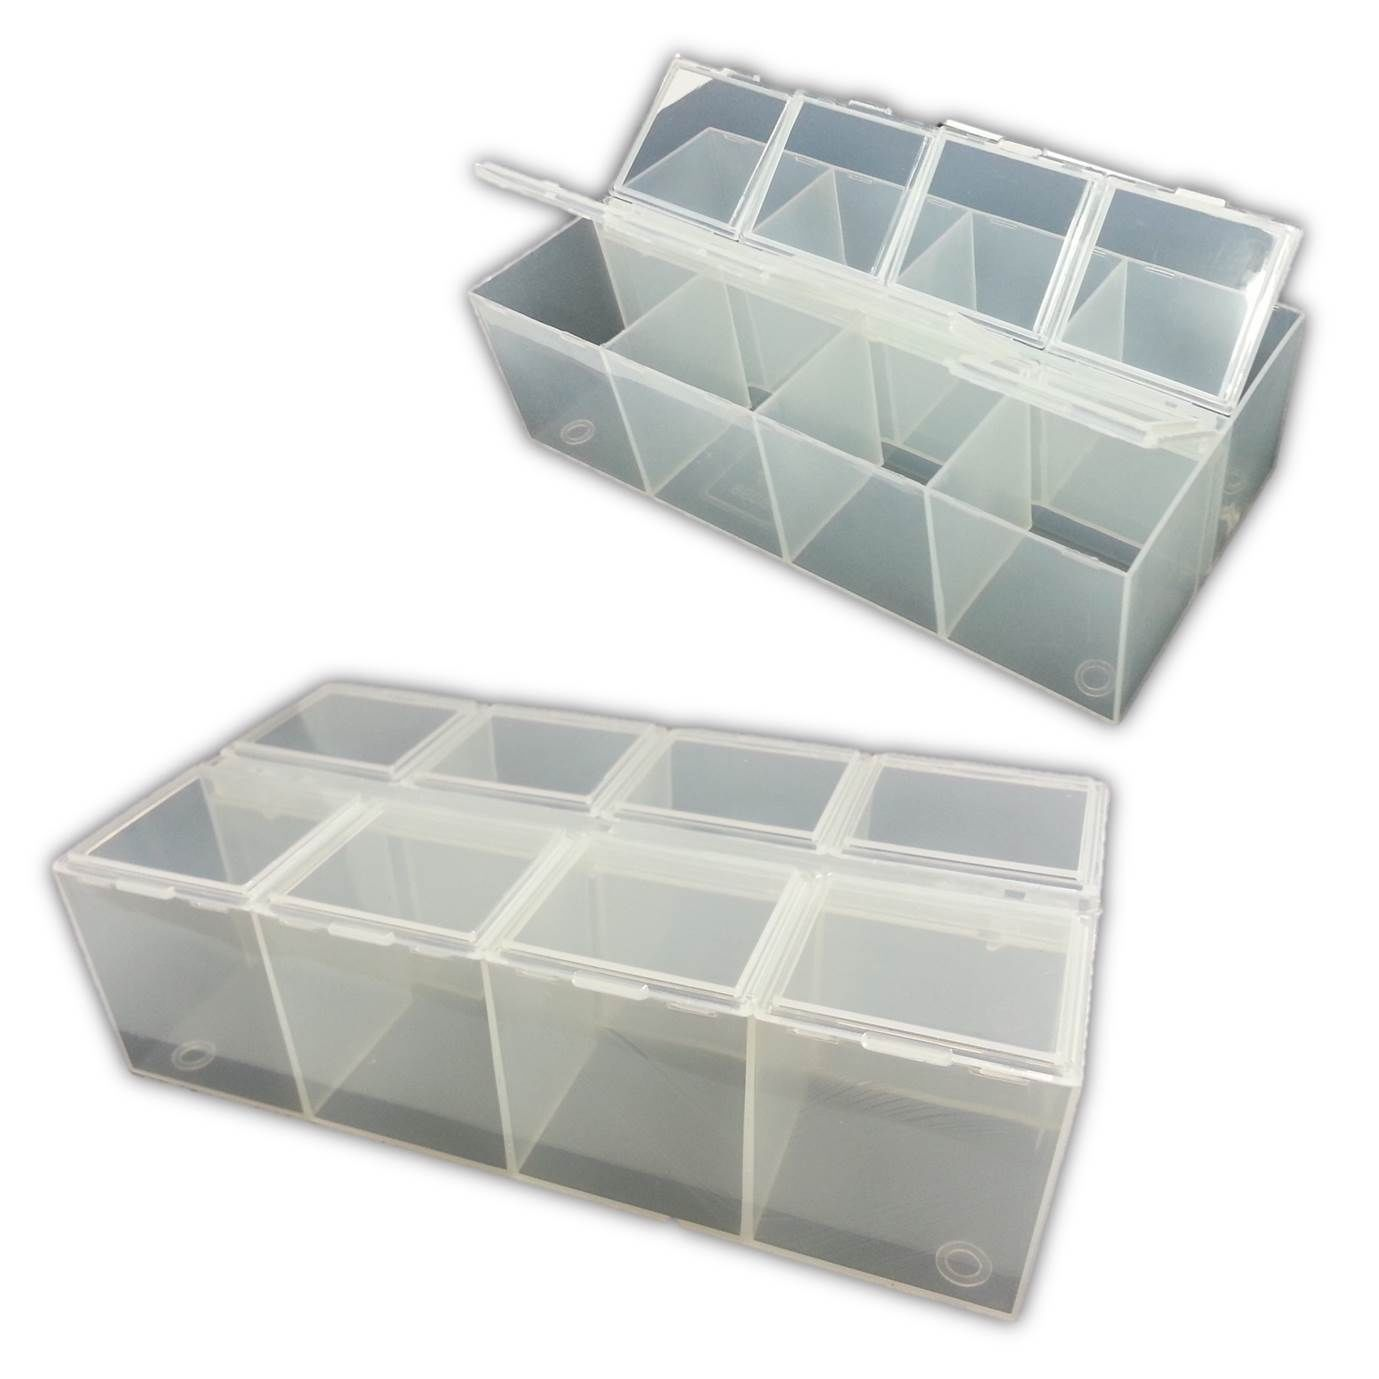 8 compartment plastic bead craft jewellery storage